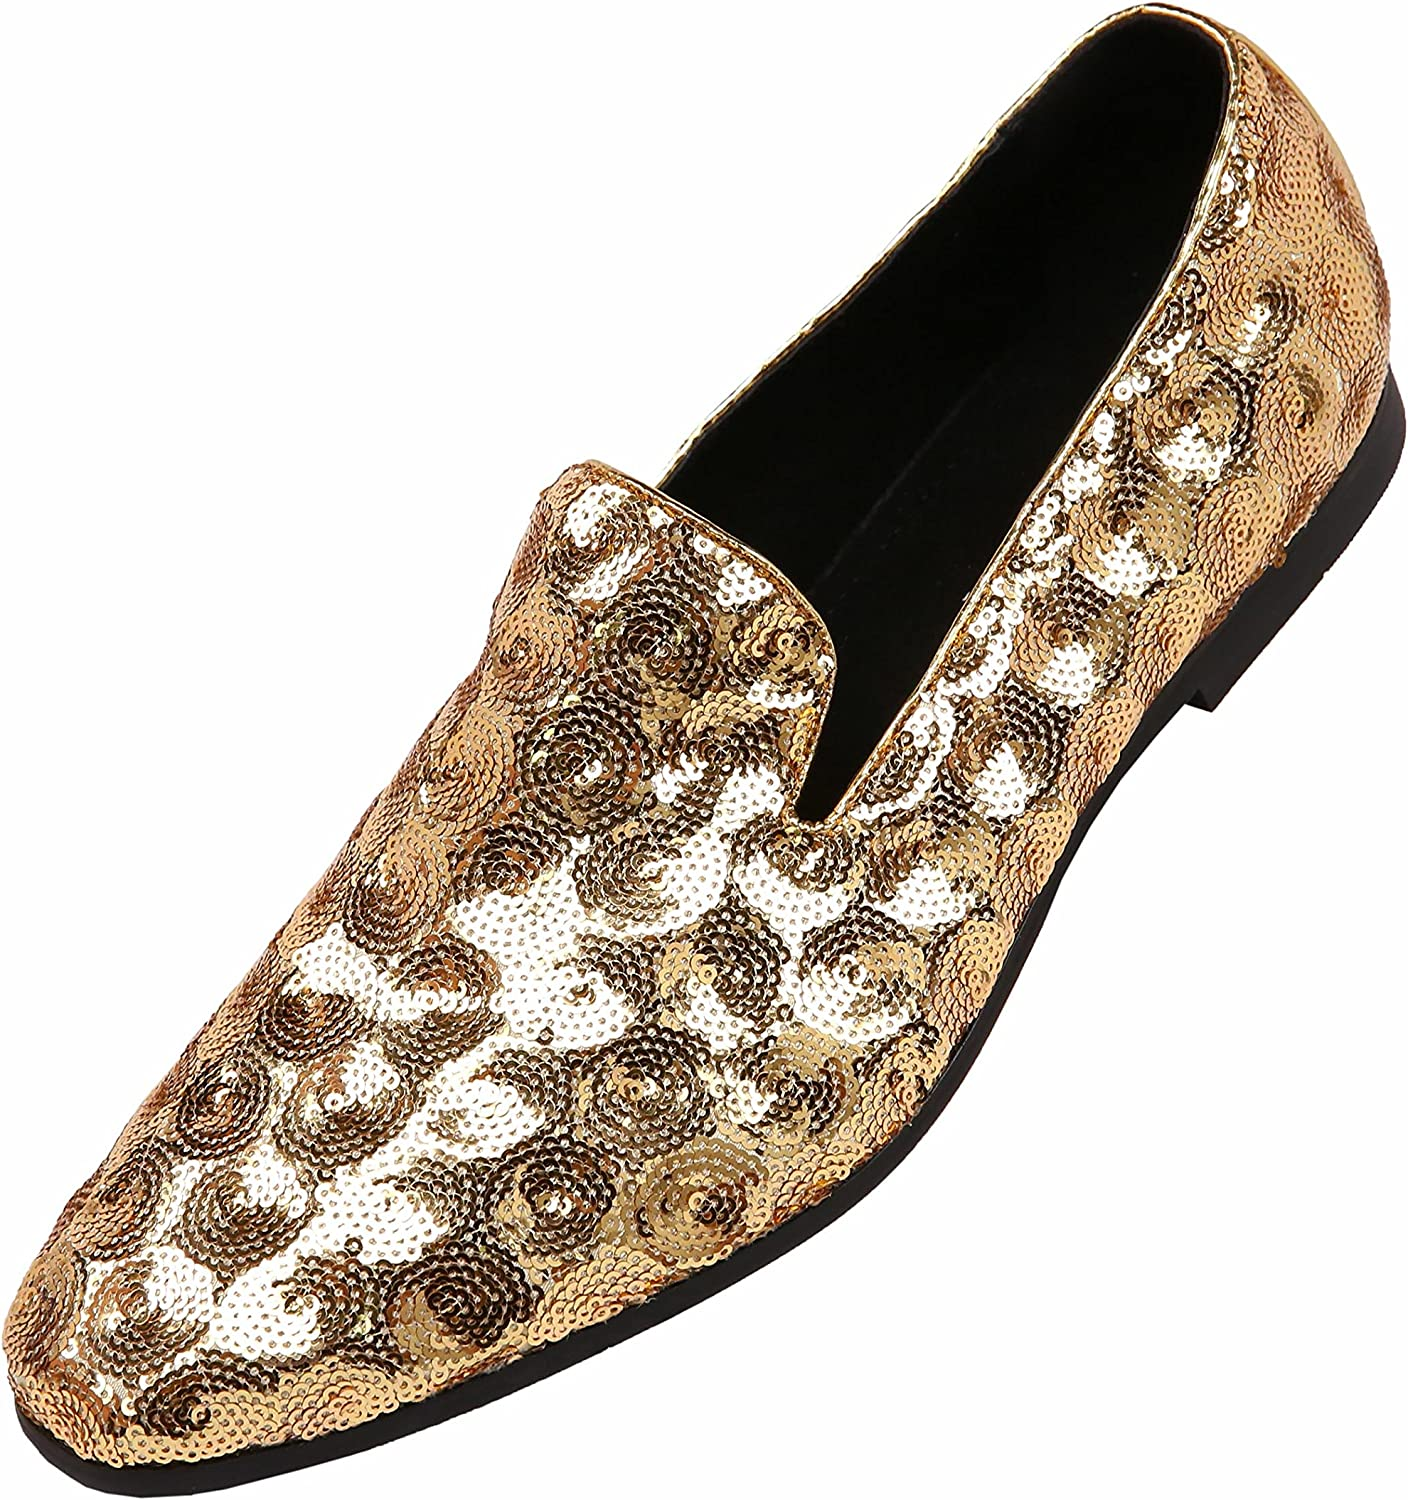 Mens Pointy Toe Polish Slip on Nightclub Party New Low Top Leisure Leather Shoes